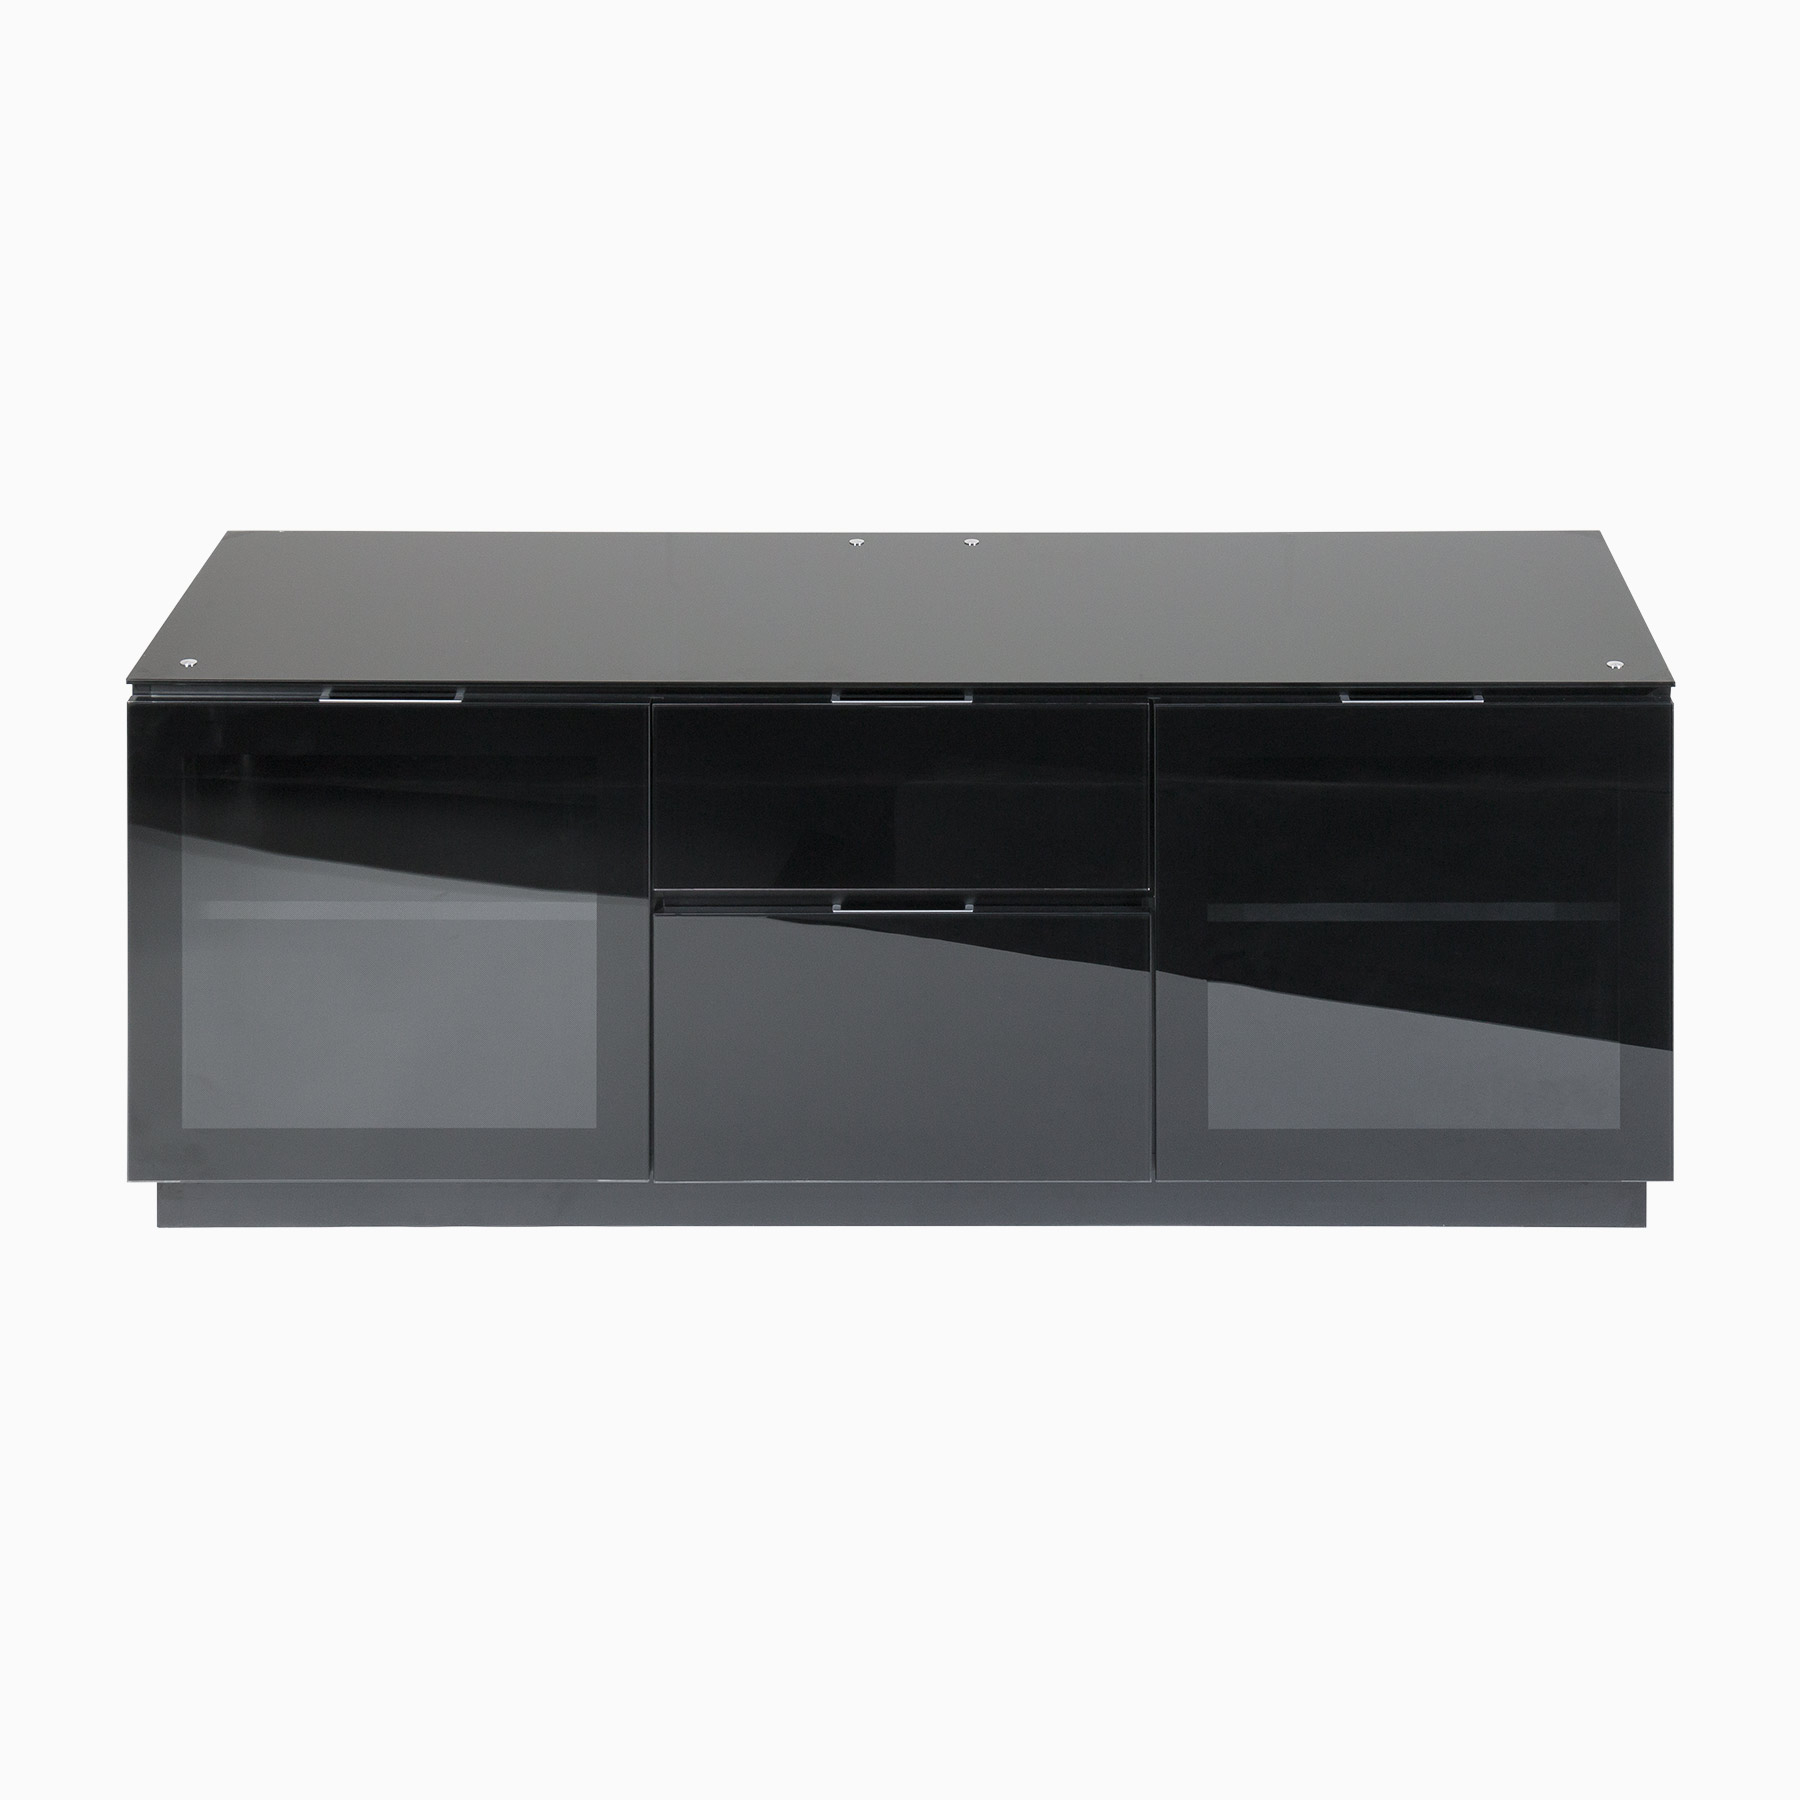 "Tv Cabinet With Doors And Drawers For Up To 65"" Screens Intended For Newest Black Gloss Tv Units (View 19 of 20)"